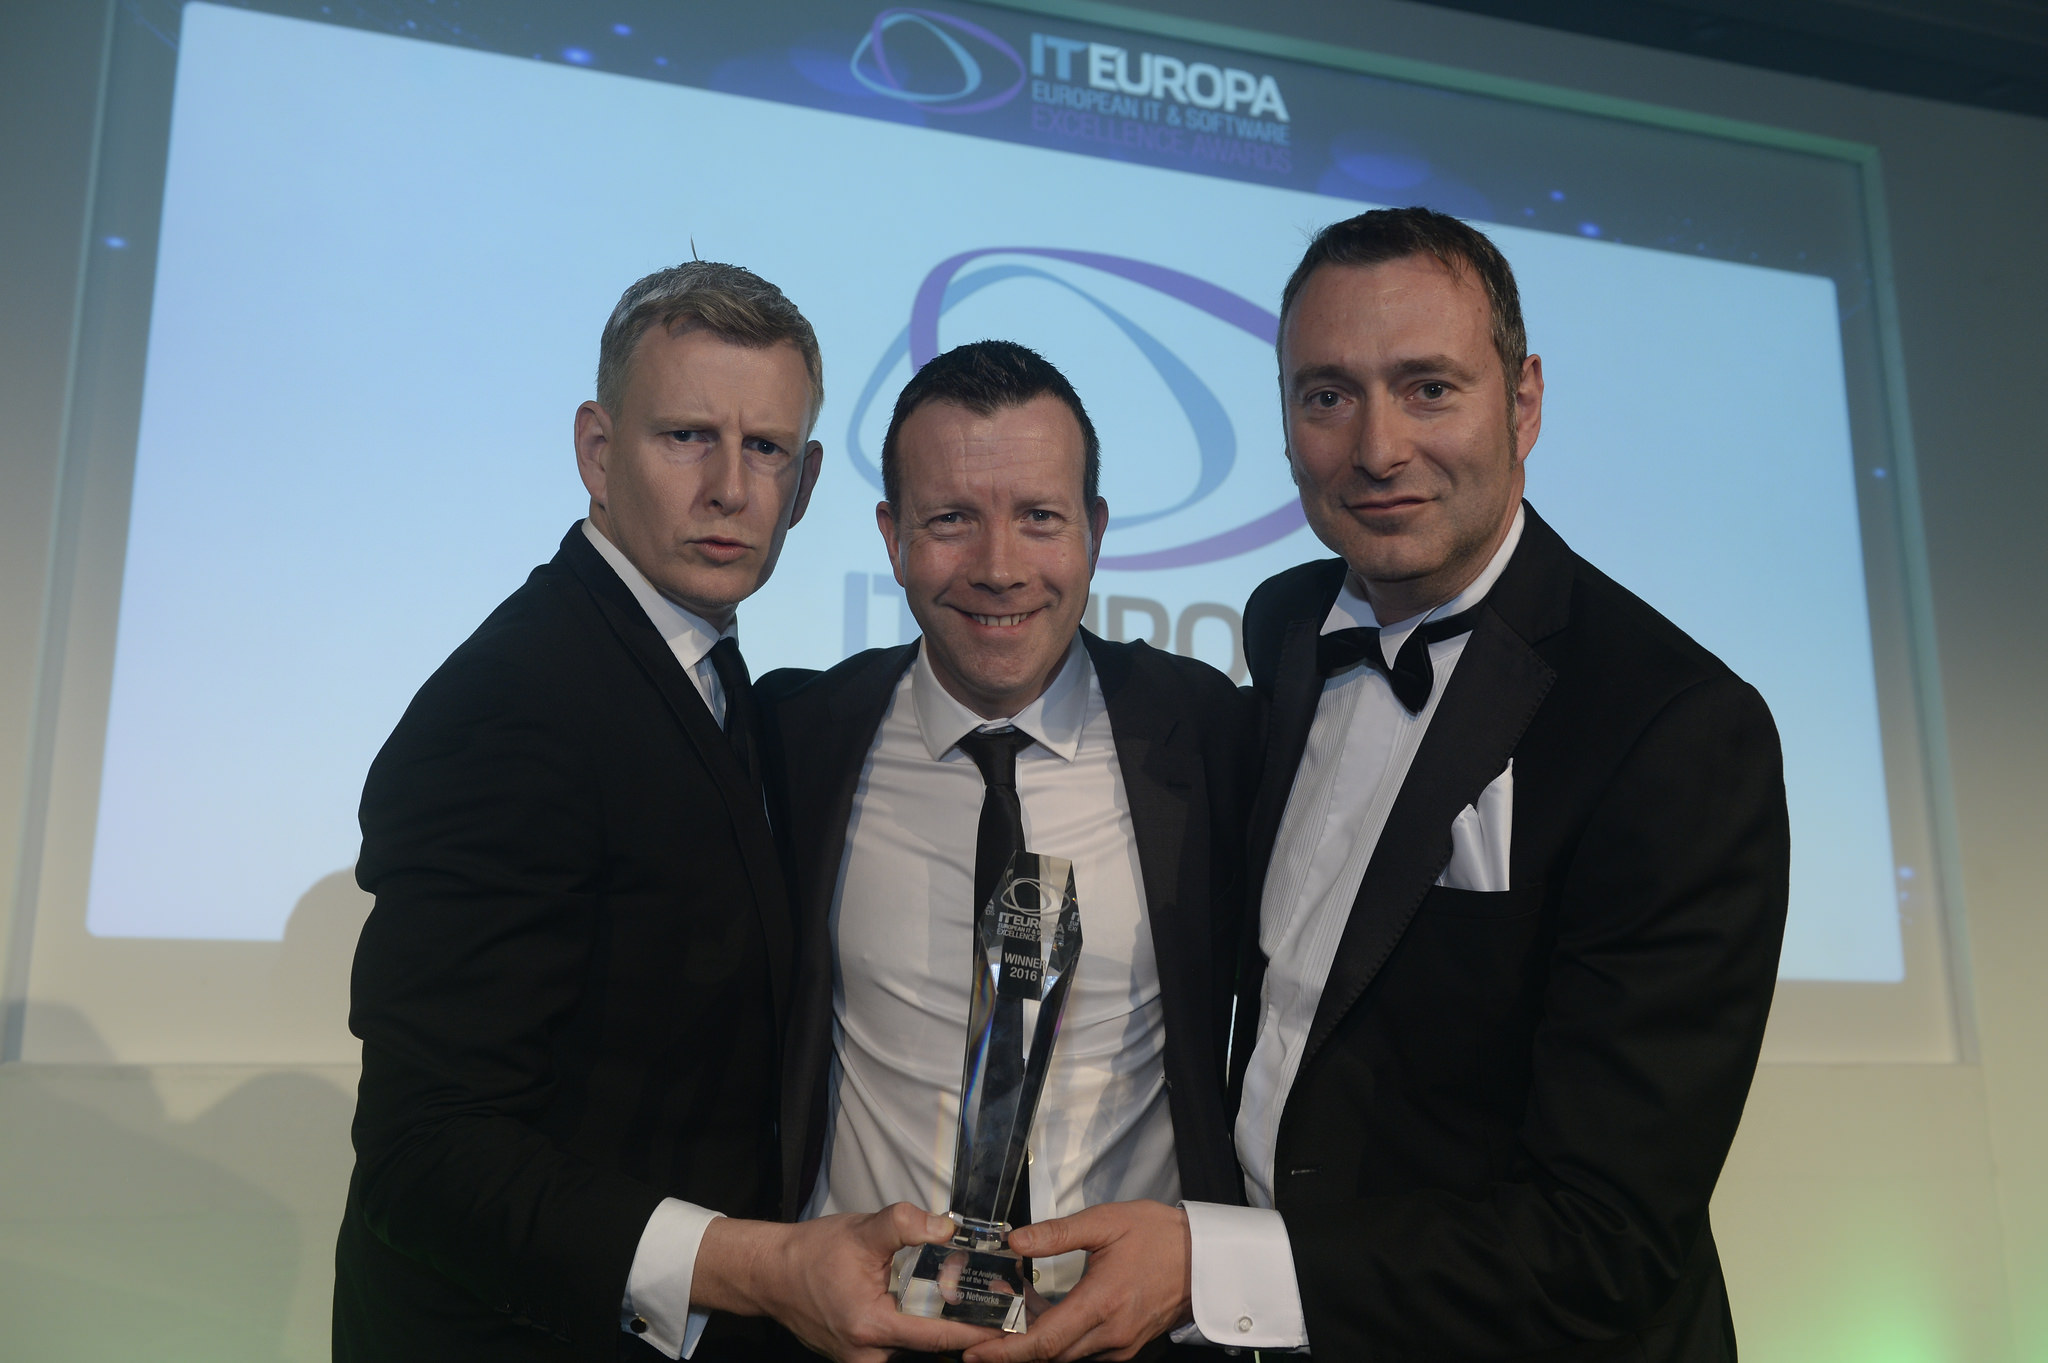 Accepting IT Europa's top prize